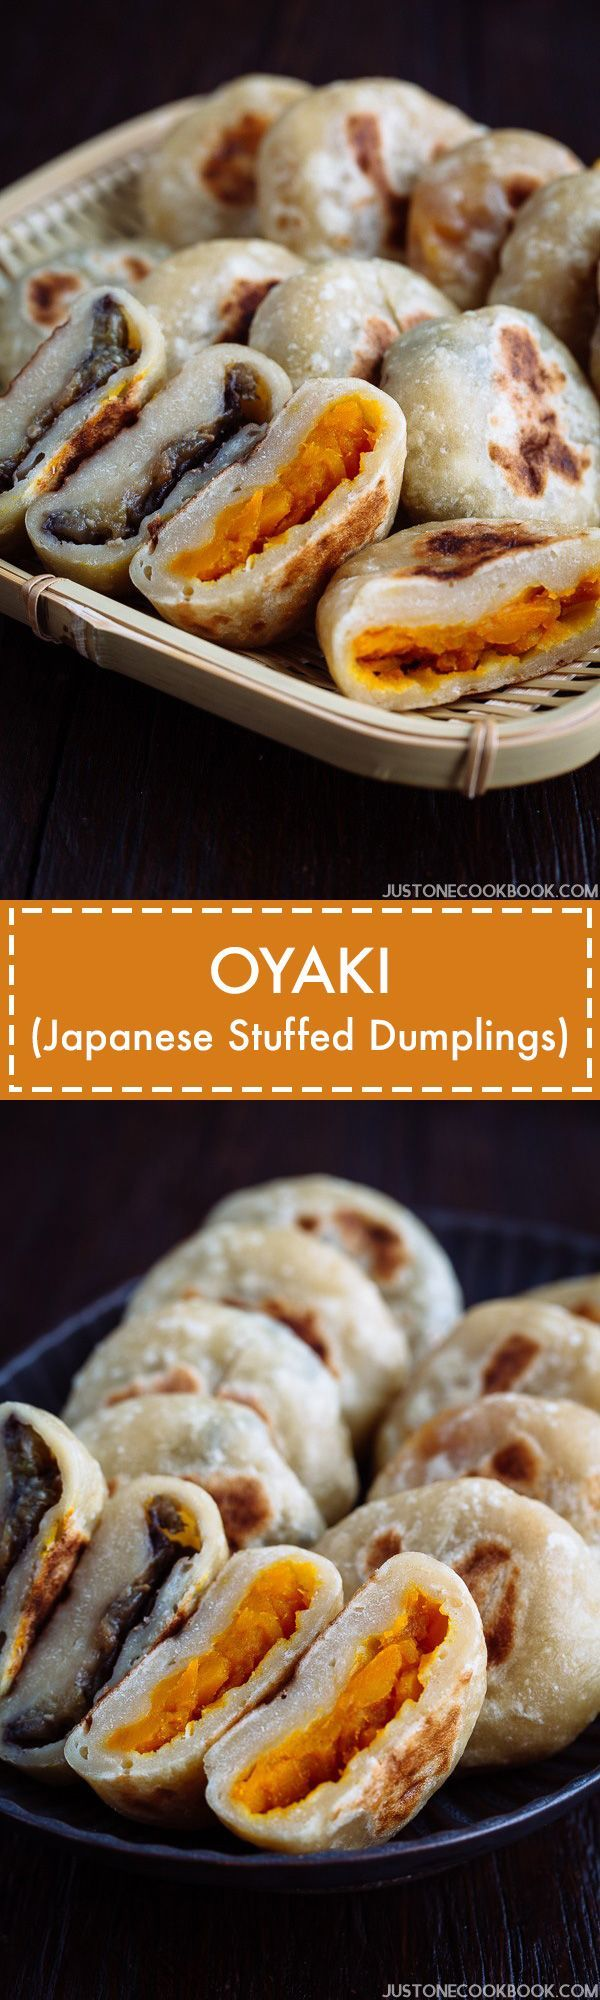 Oyaki (Japanese Stuffed Dumplings) おやき | Easy Japanese Recipes at JustOneCookbook.com